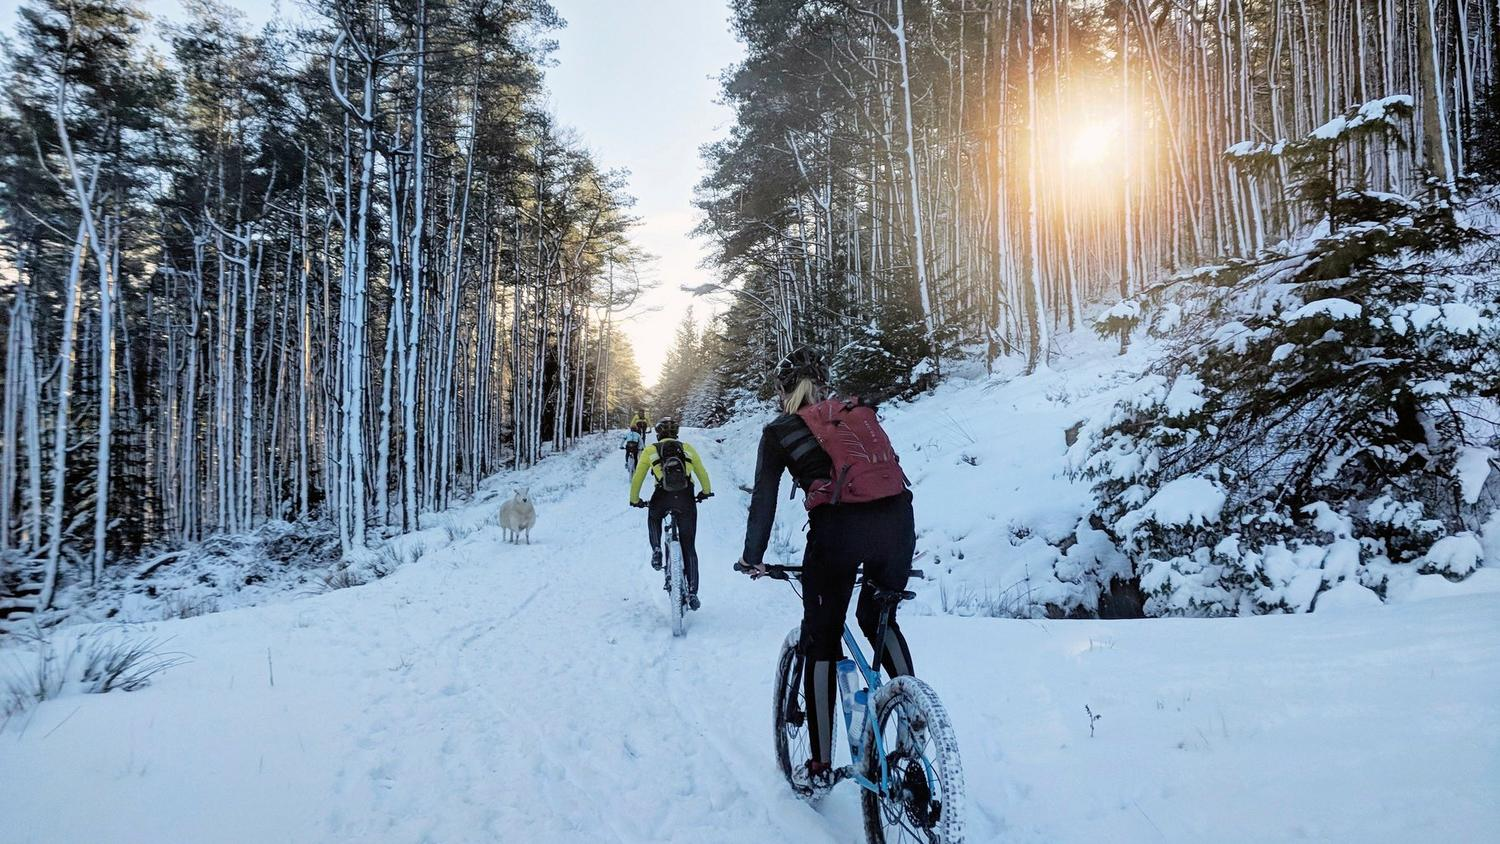 Rapha Festive 500 Off-Road Challenge - The Road Less Travelled with Katherine Moore Cycling Adventure Athlete